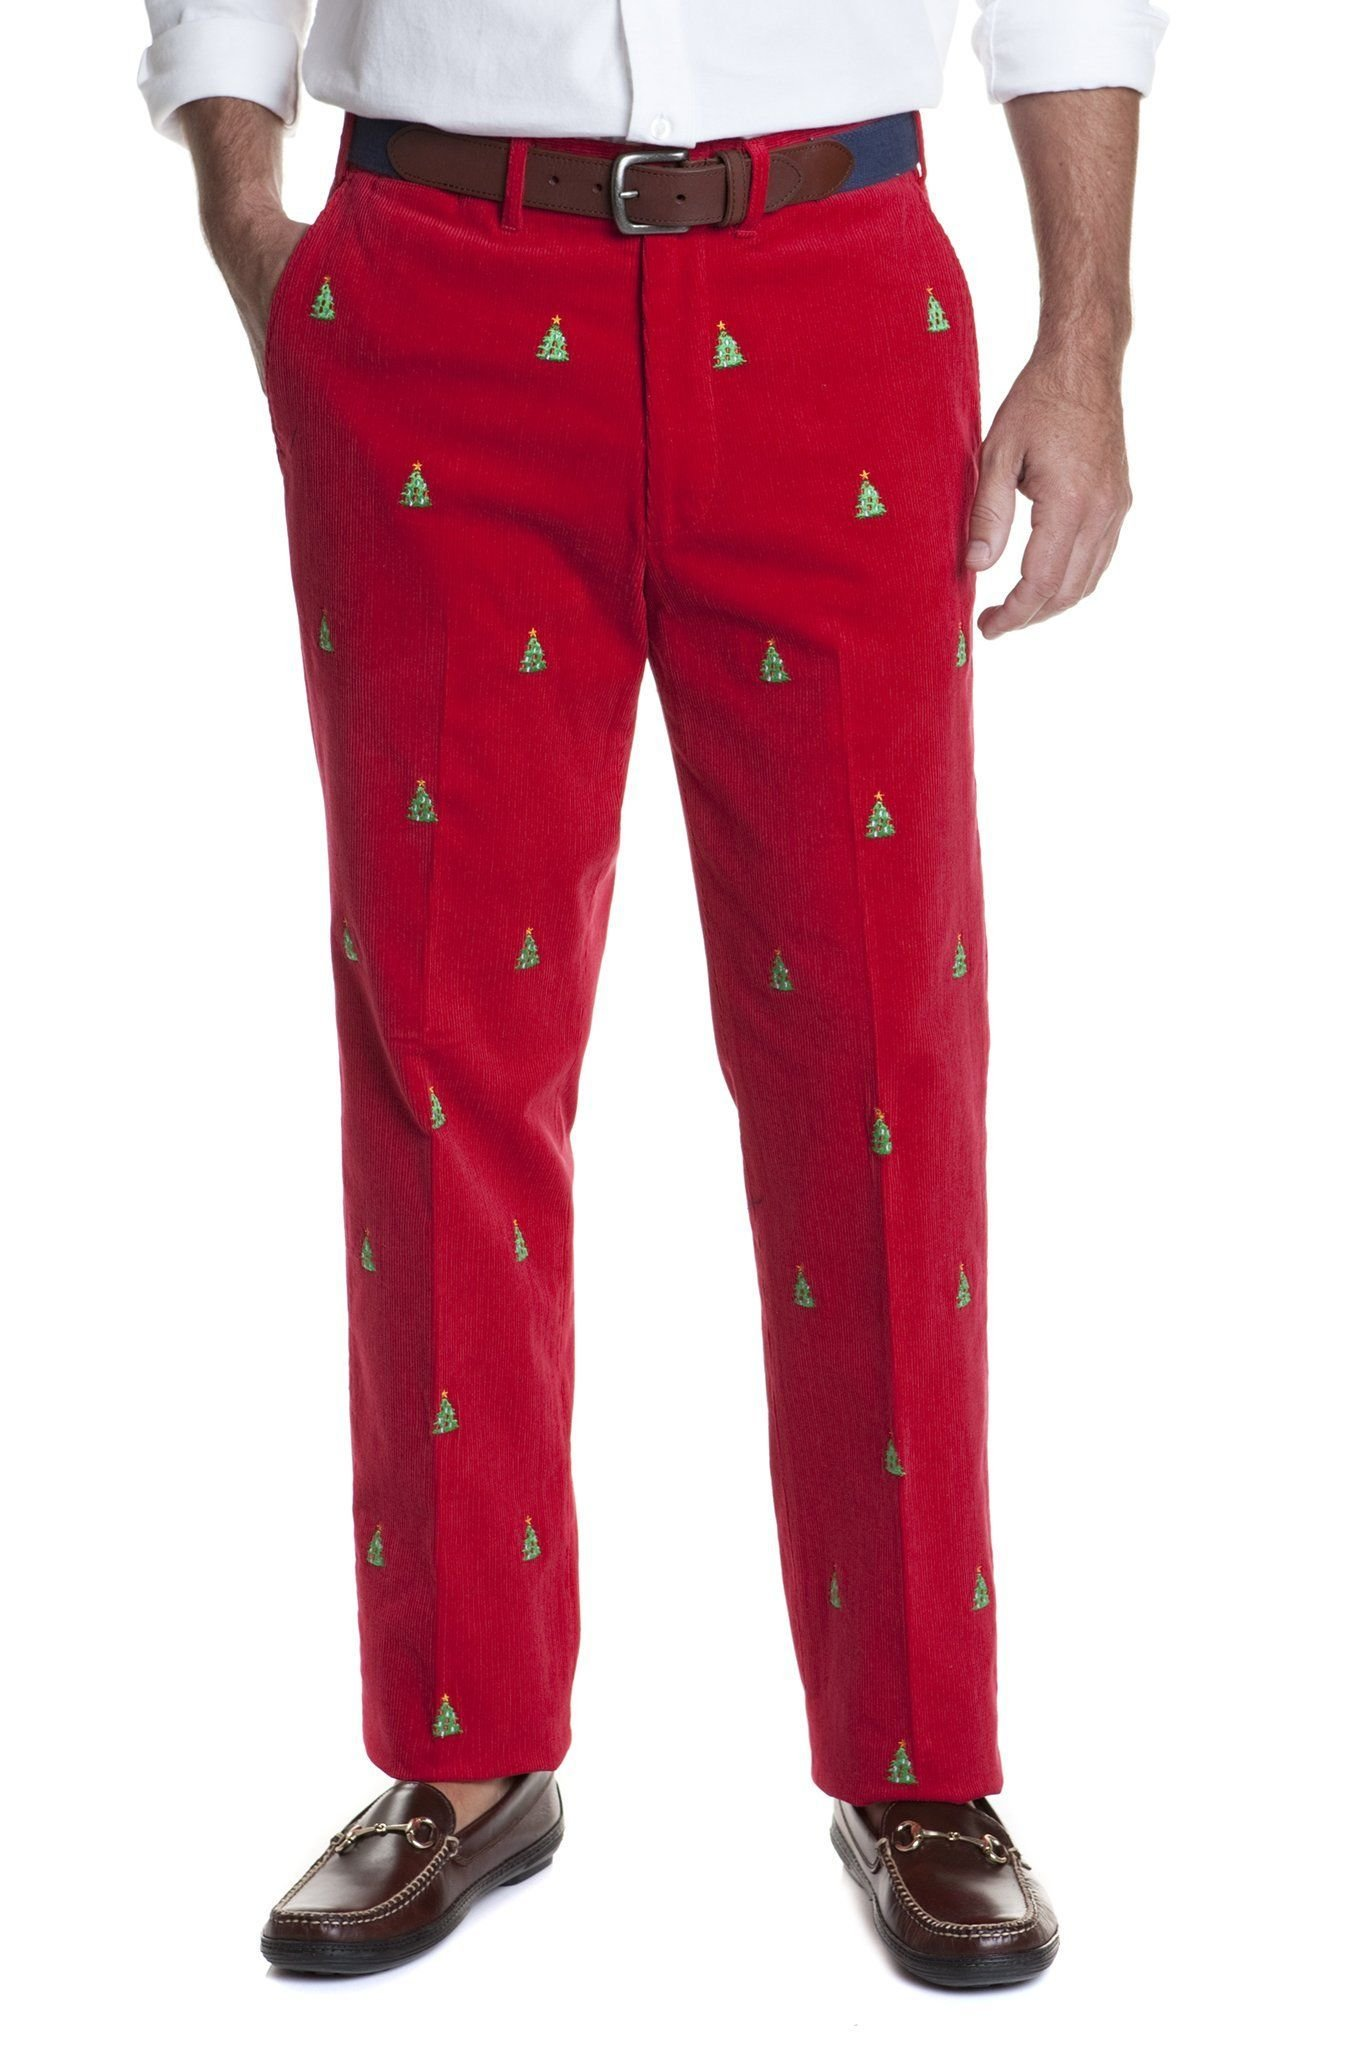 The Fine Swine Men's Castaway Embroidered Holiday Pants 38 Crimson Red with Christmas Trees